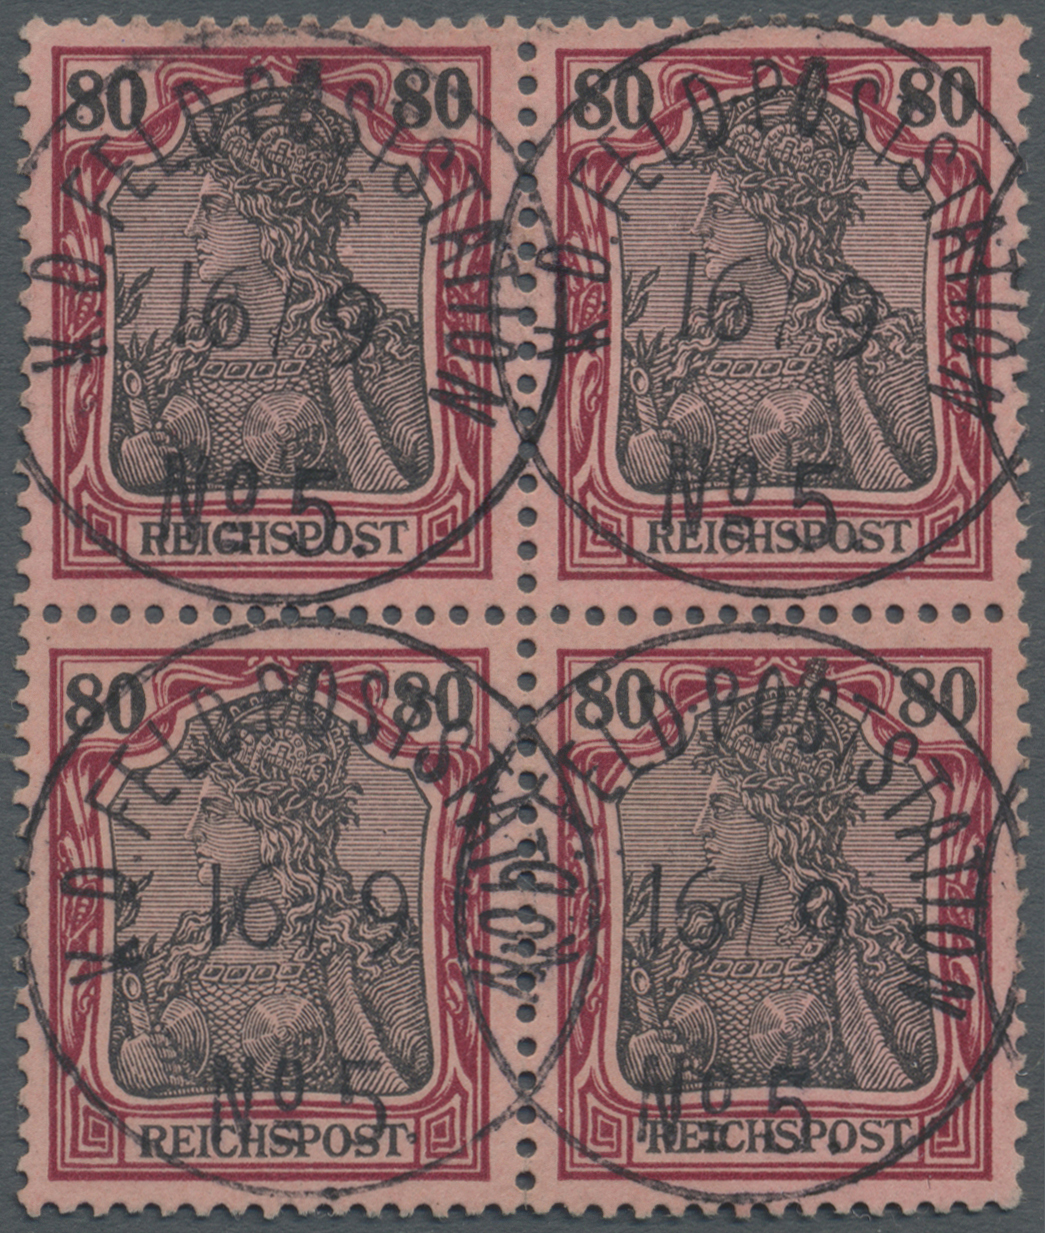 Lot 21898 - Deutsche Post in China - Mitläufer  -  Auktionshaus Christoph Gärtner GmbH & Co. KG Single lots Germany + Picture Postcards. Auction #39 Day 5